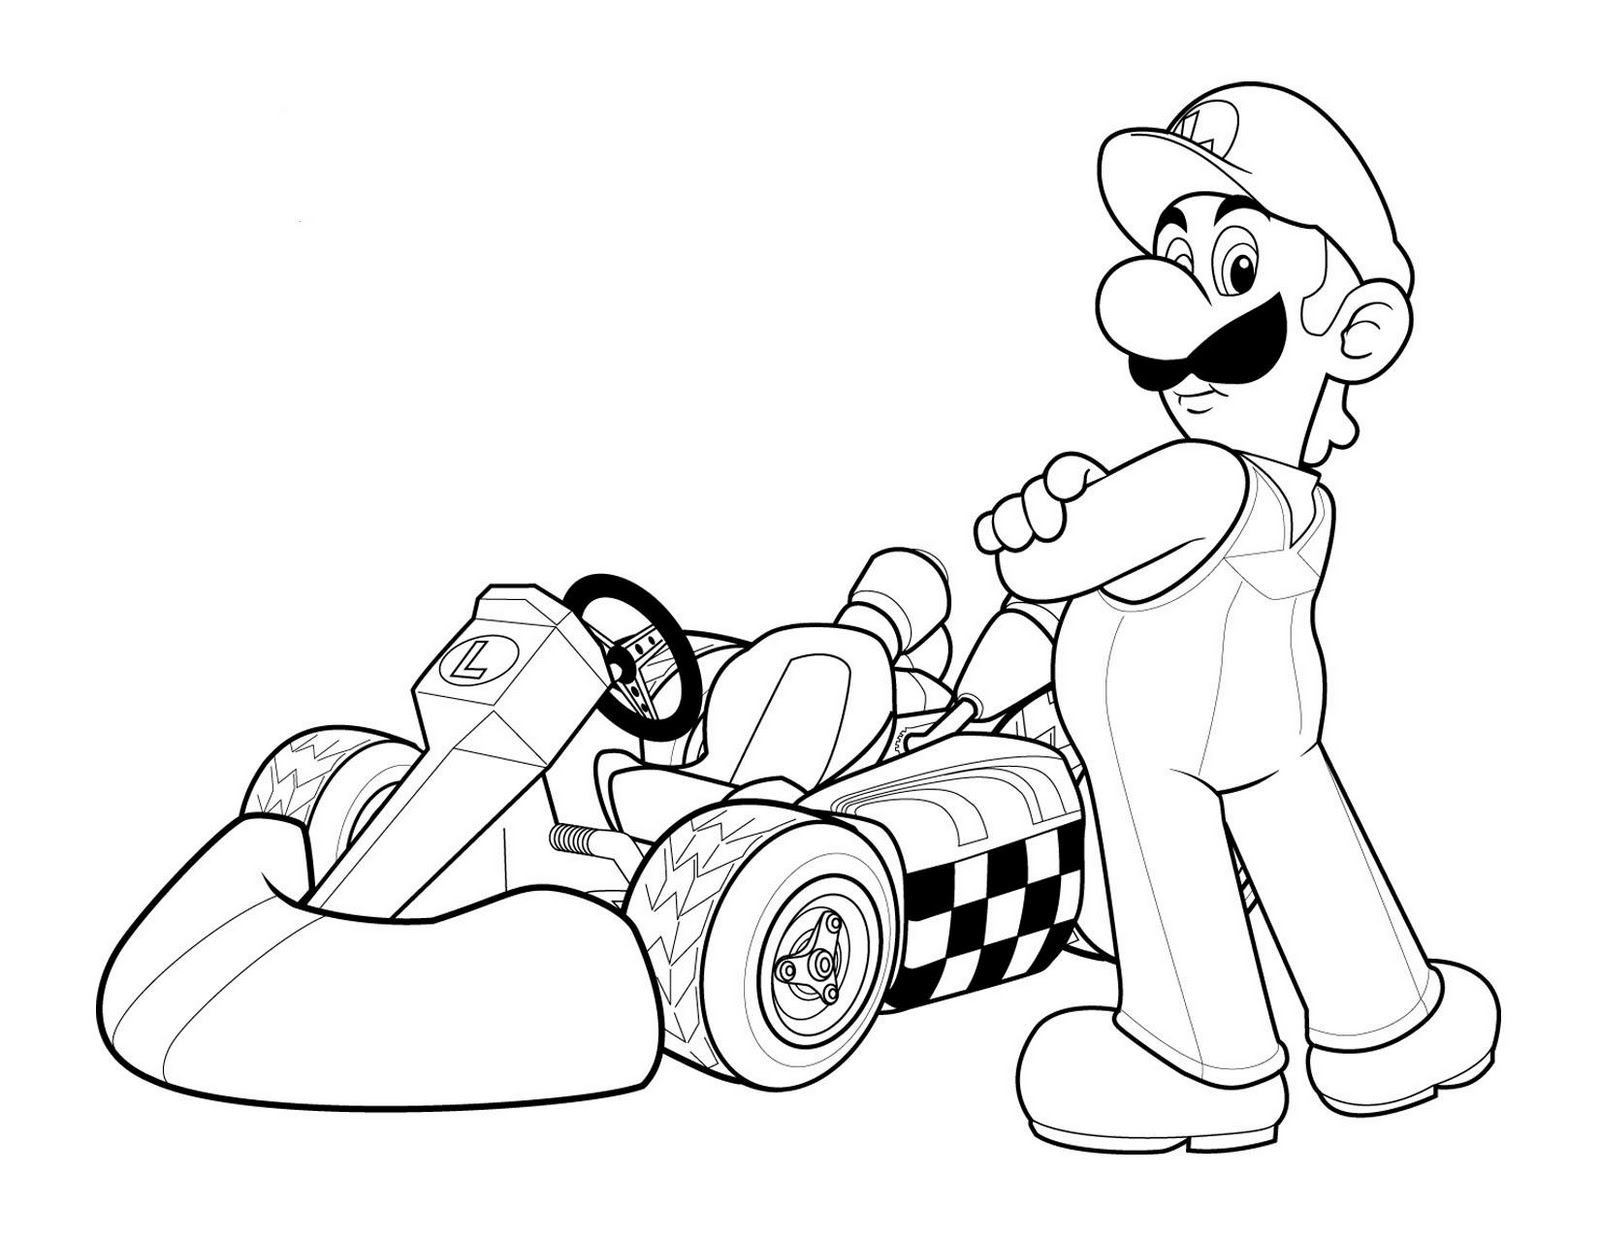 Cars guido coloring pages - Luigi Cars Coloring Page Colouring Pages 720x428 Email